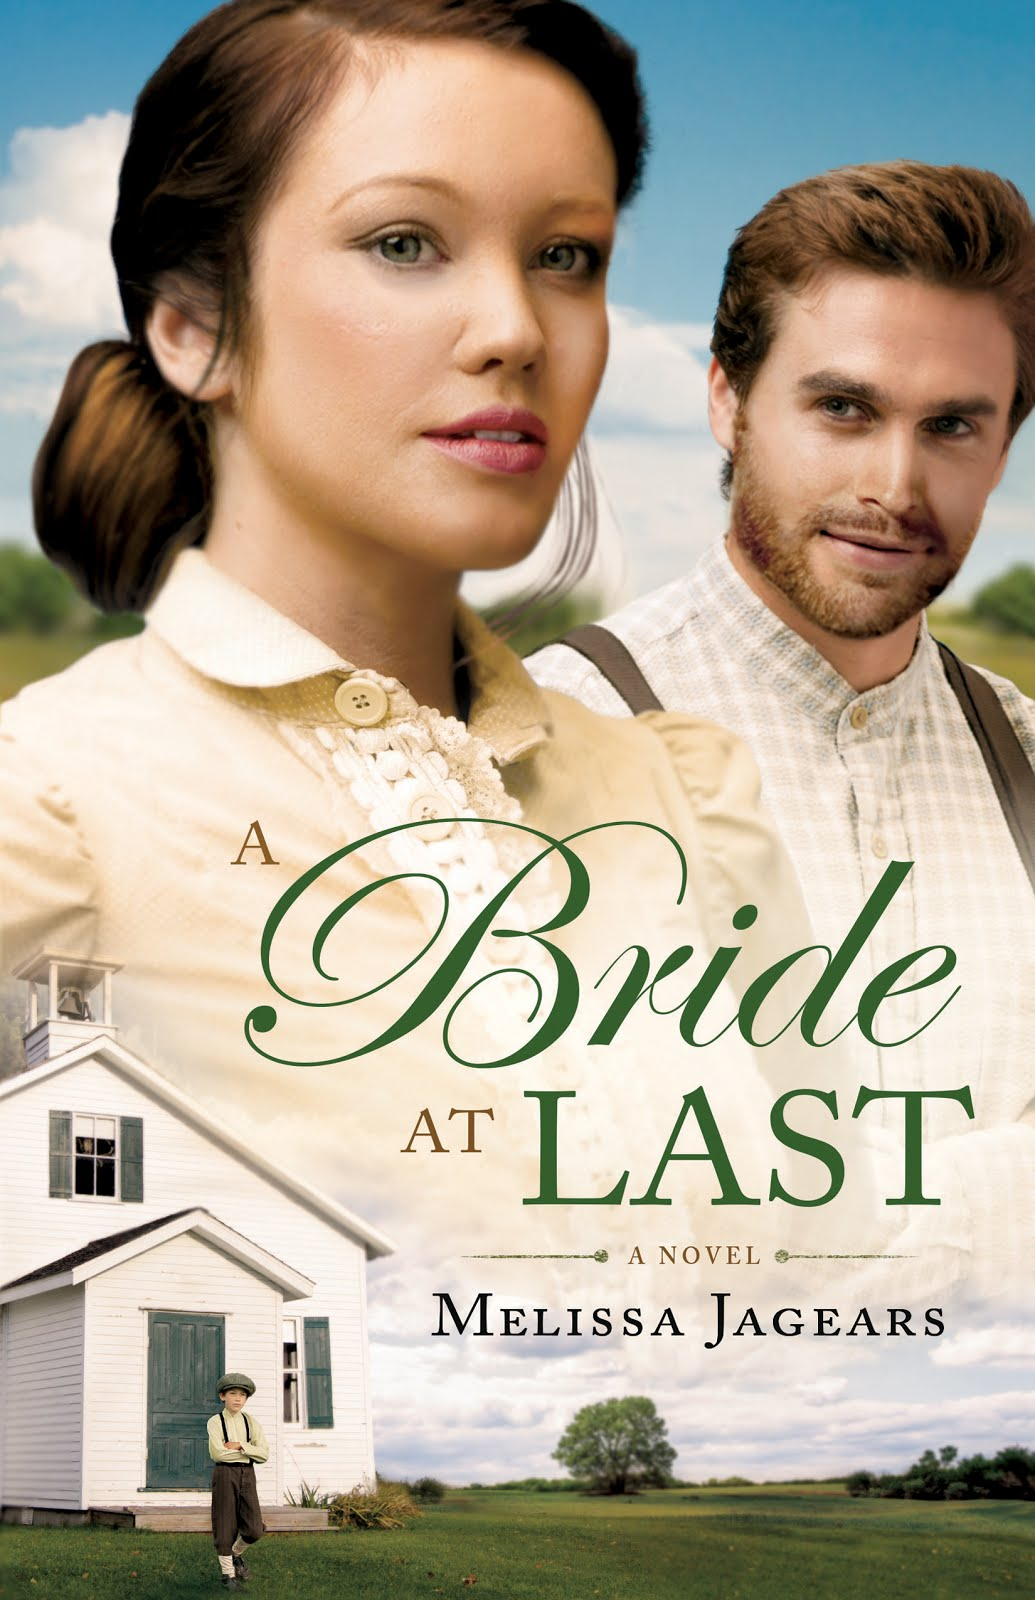 A Bride at Last Blog Tour 7/14 - 8/4